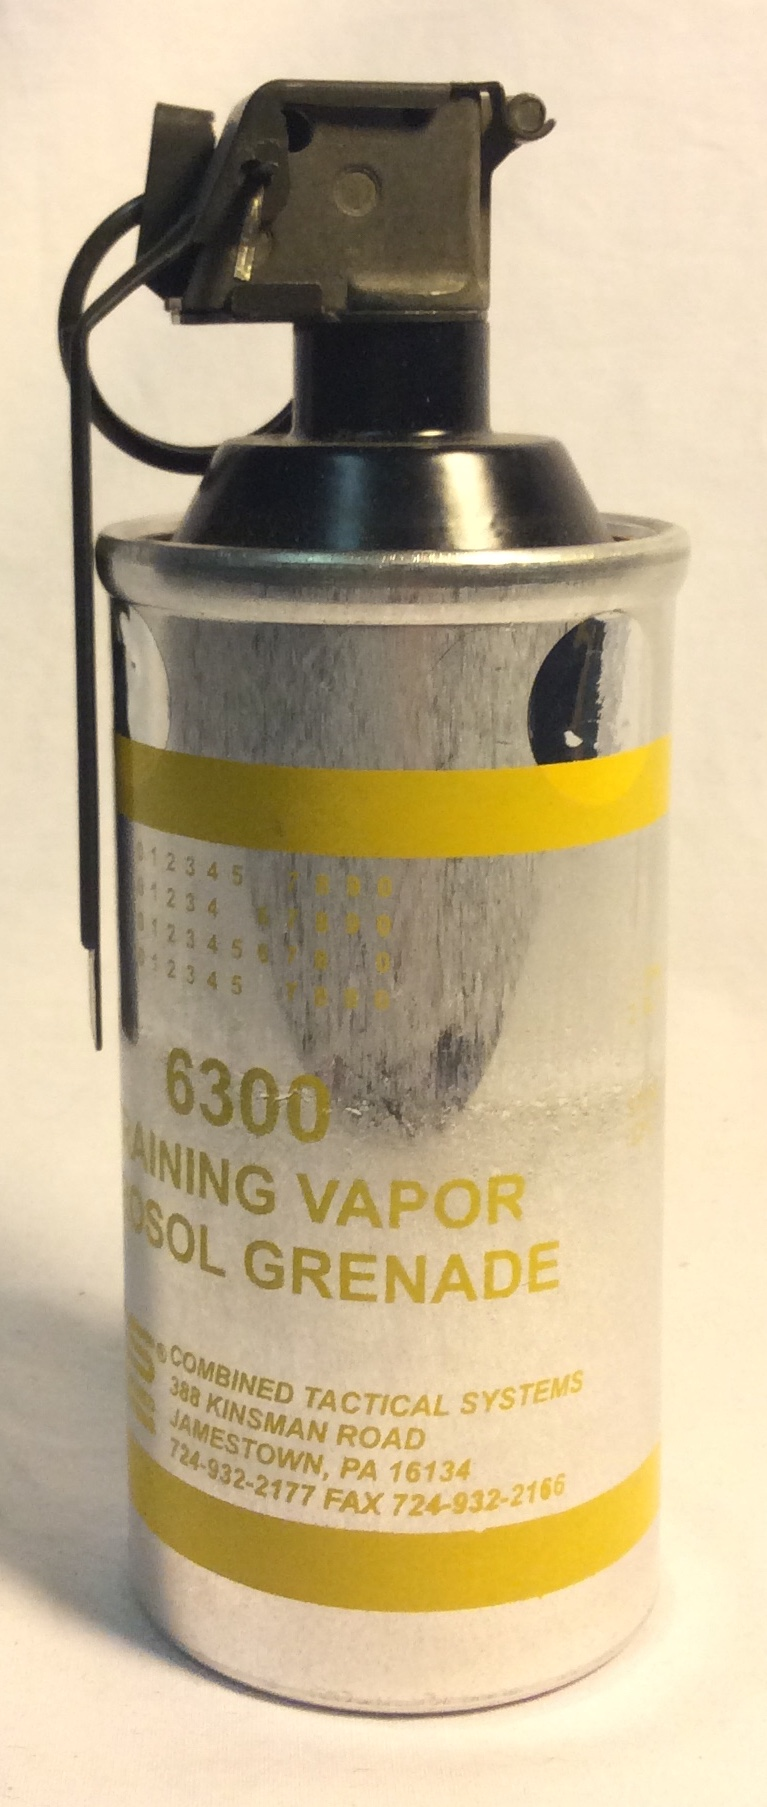 "Combined Tactical systems aerosol grenade ""tear gas"" silver with yellow writing"